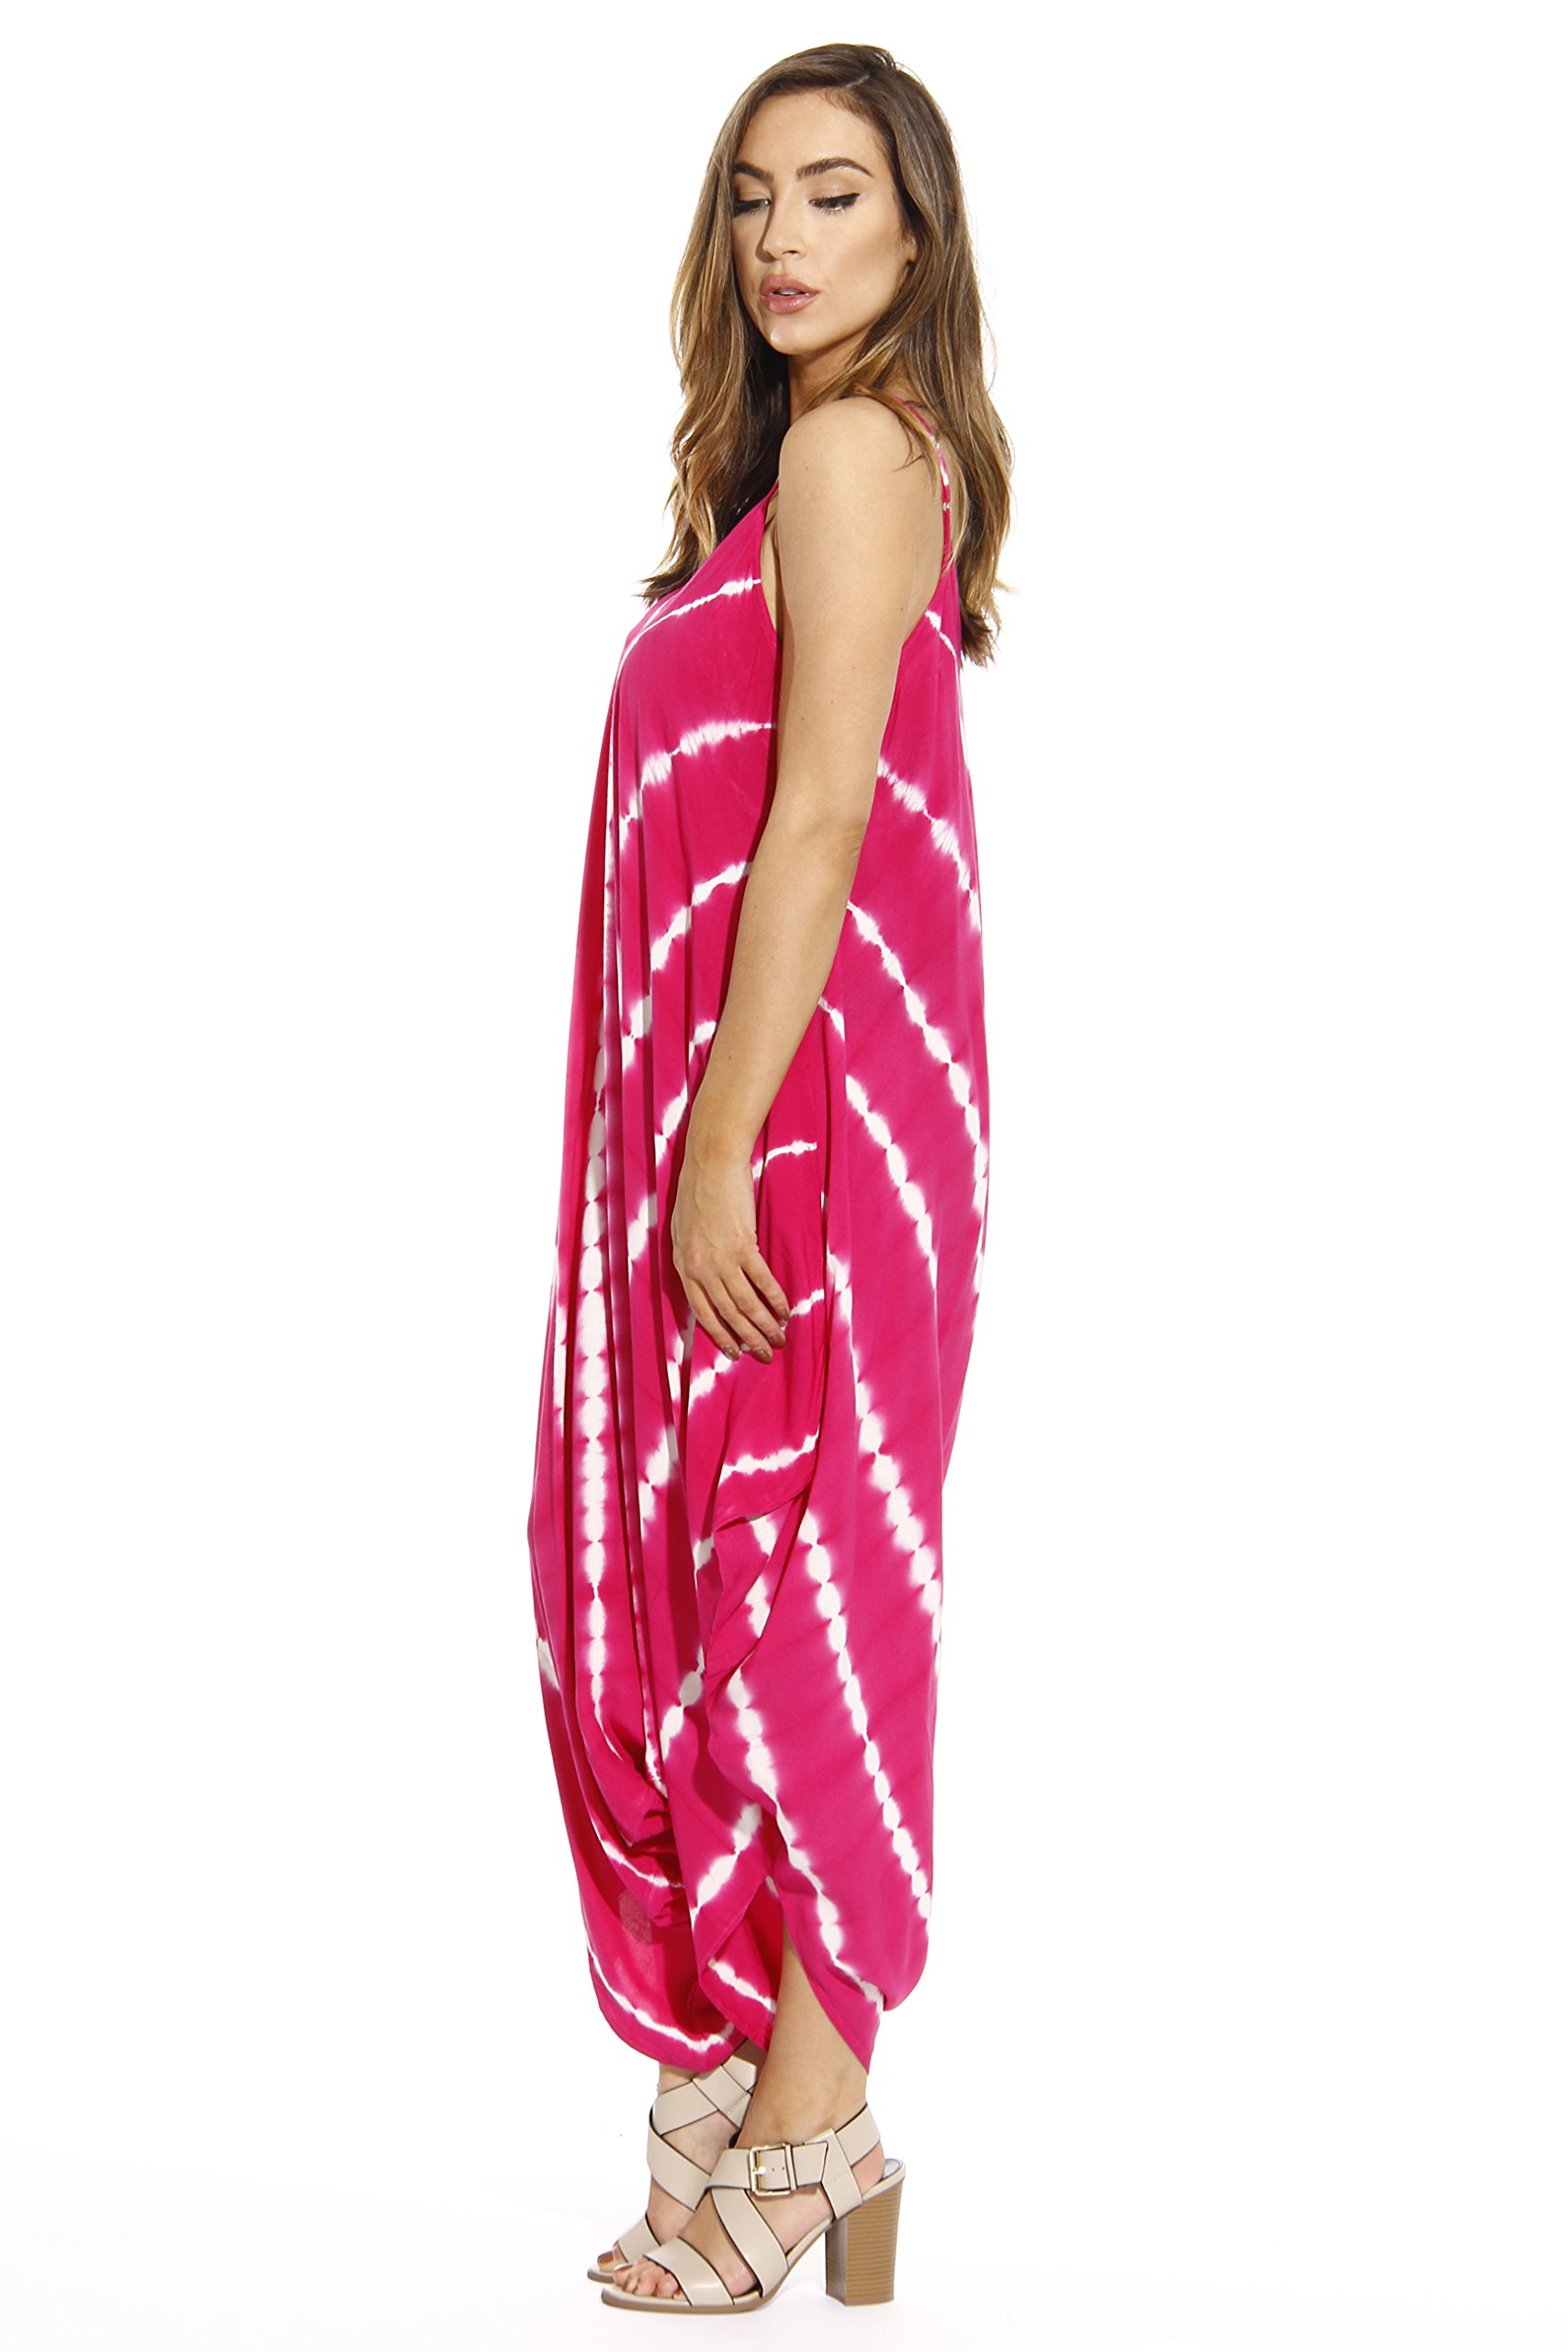 Riviera Sun 21635-FW-1X Jumpsuit/Jumpsuits for Women by Riviera Sun (Image #2)